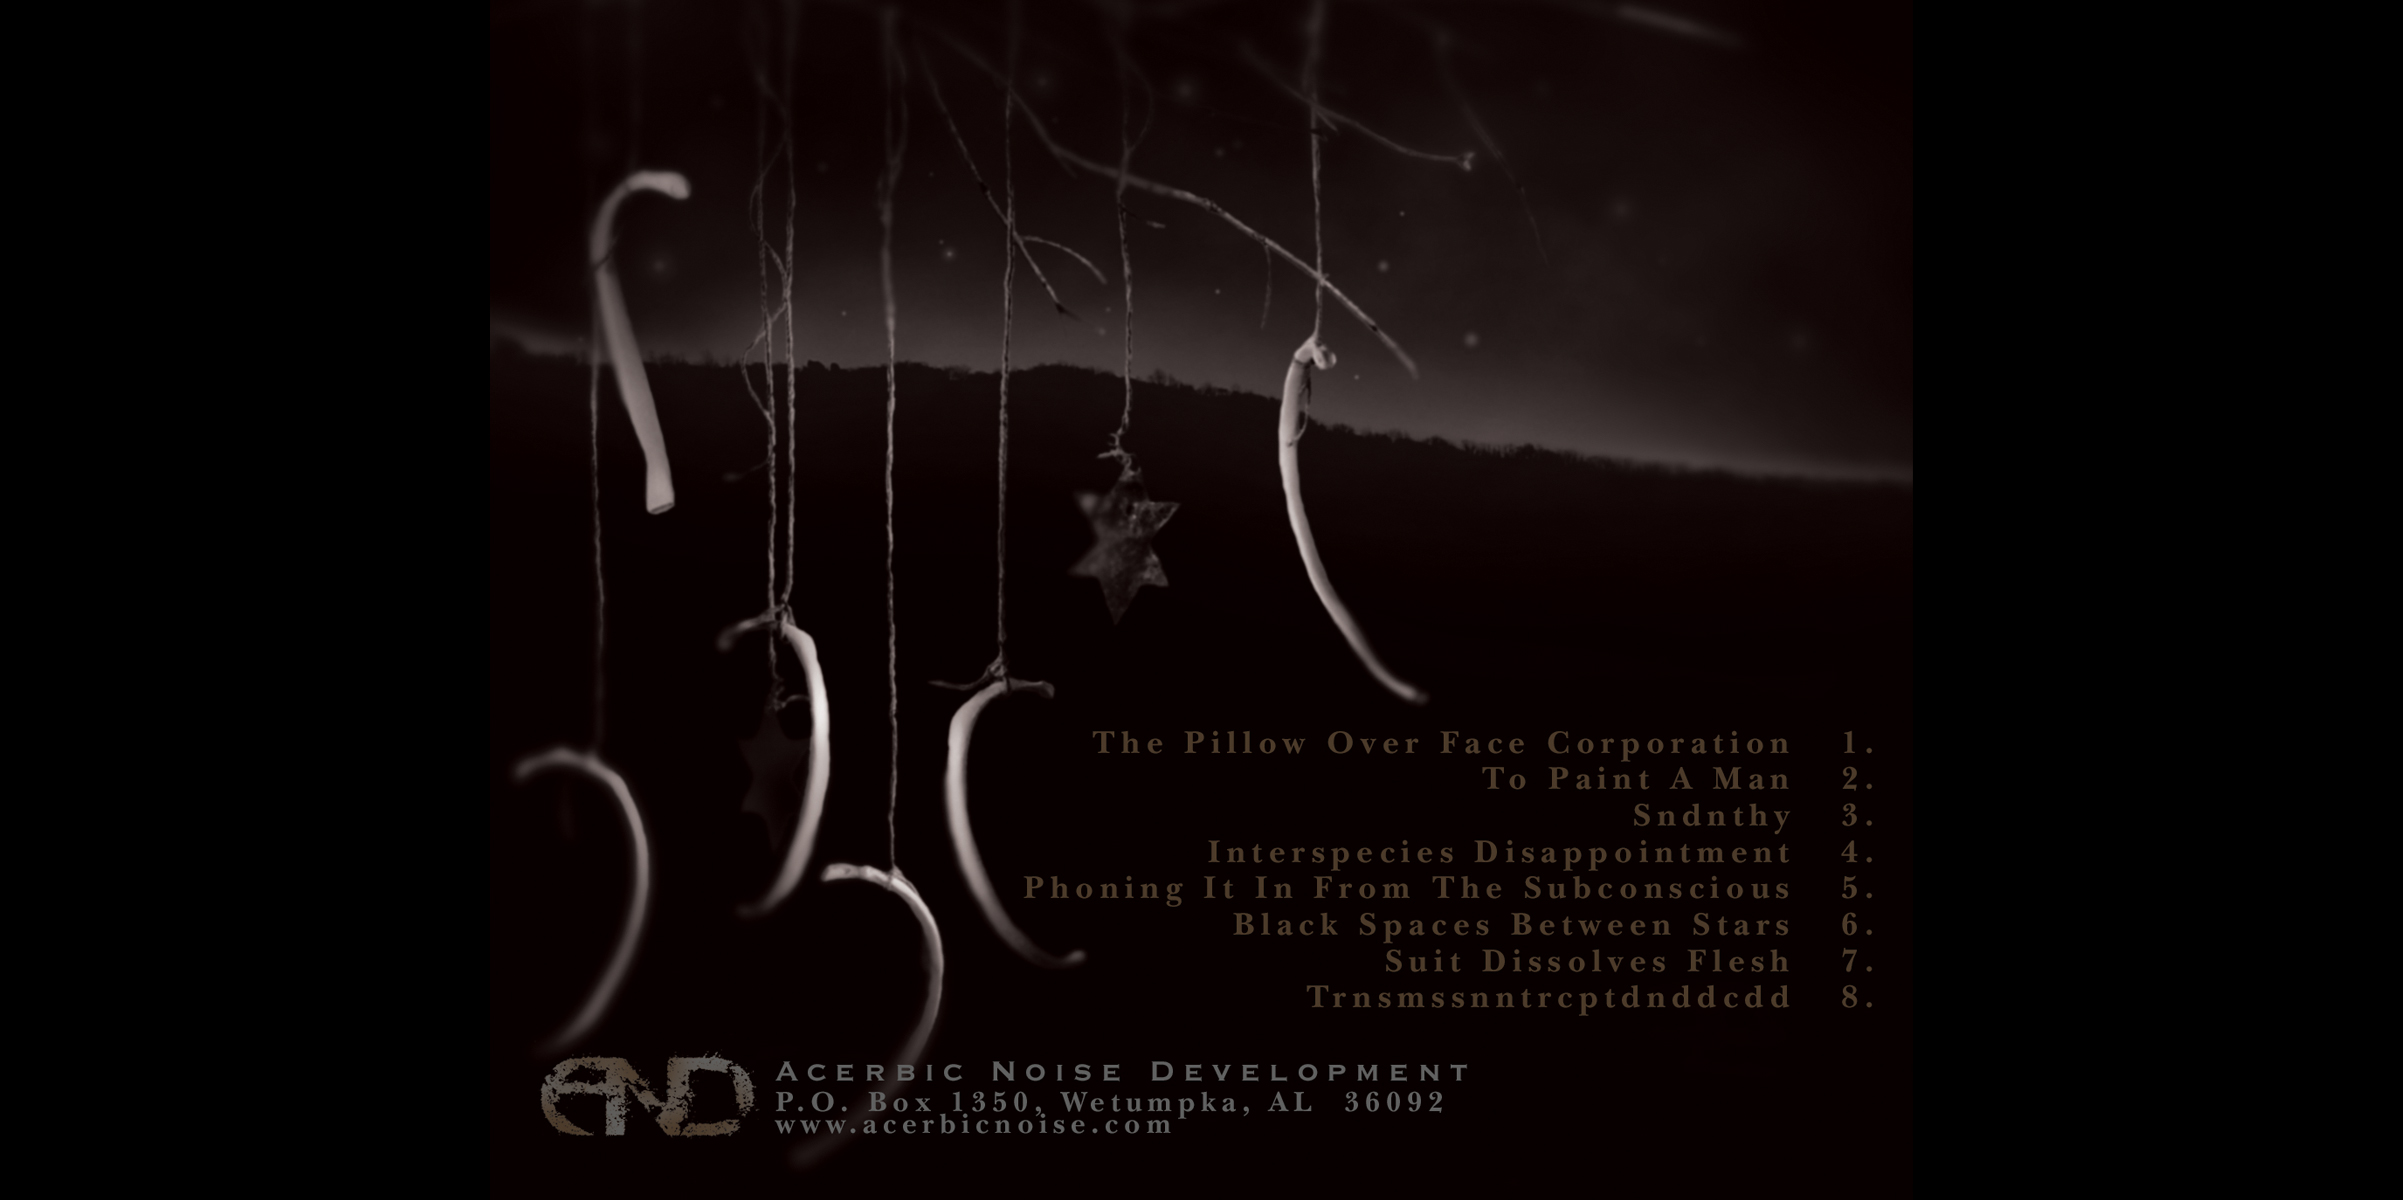 Gezoleen,  Black Spaces Between Stars . CD tray, back.  2005. Photographic illustration. Released by Acerbic Noise Development.